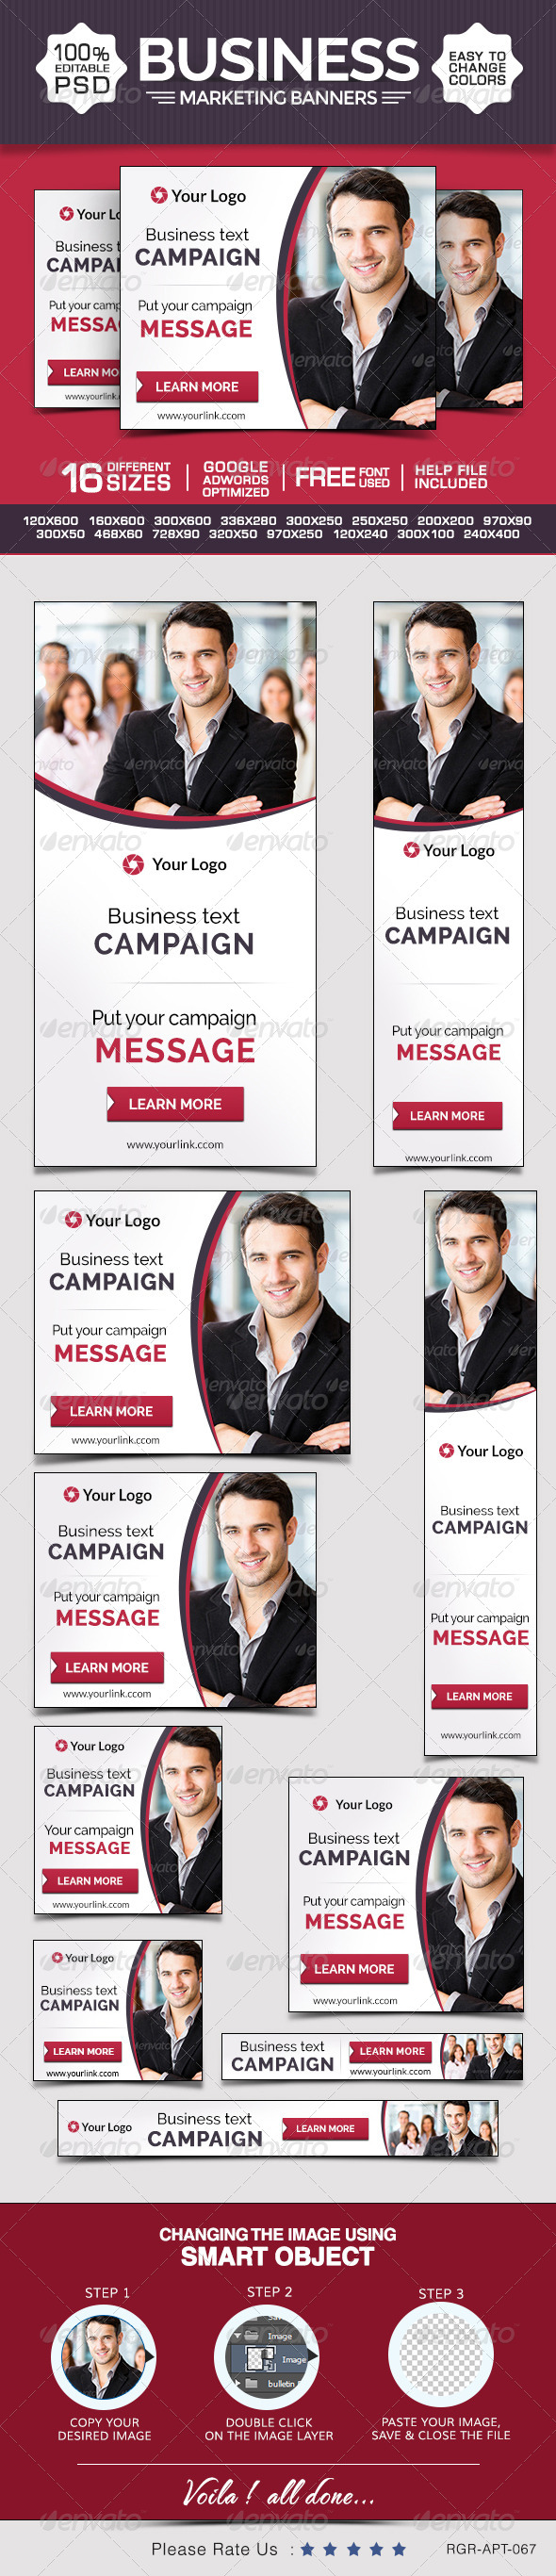 GraphicRiver Business & Marketing Banners 8696575